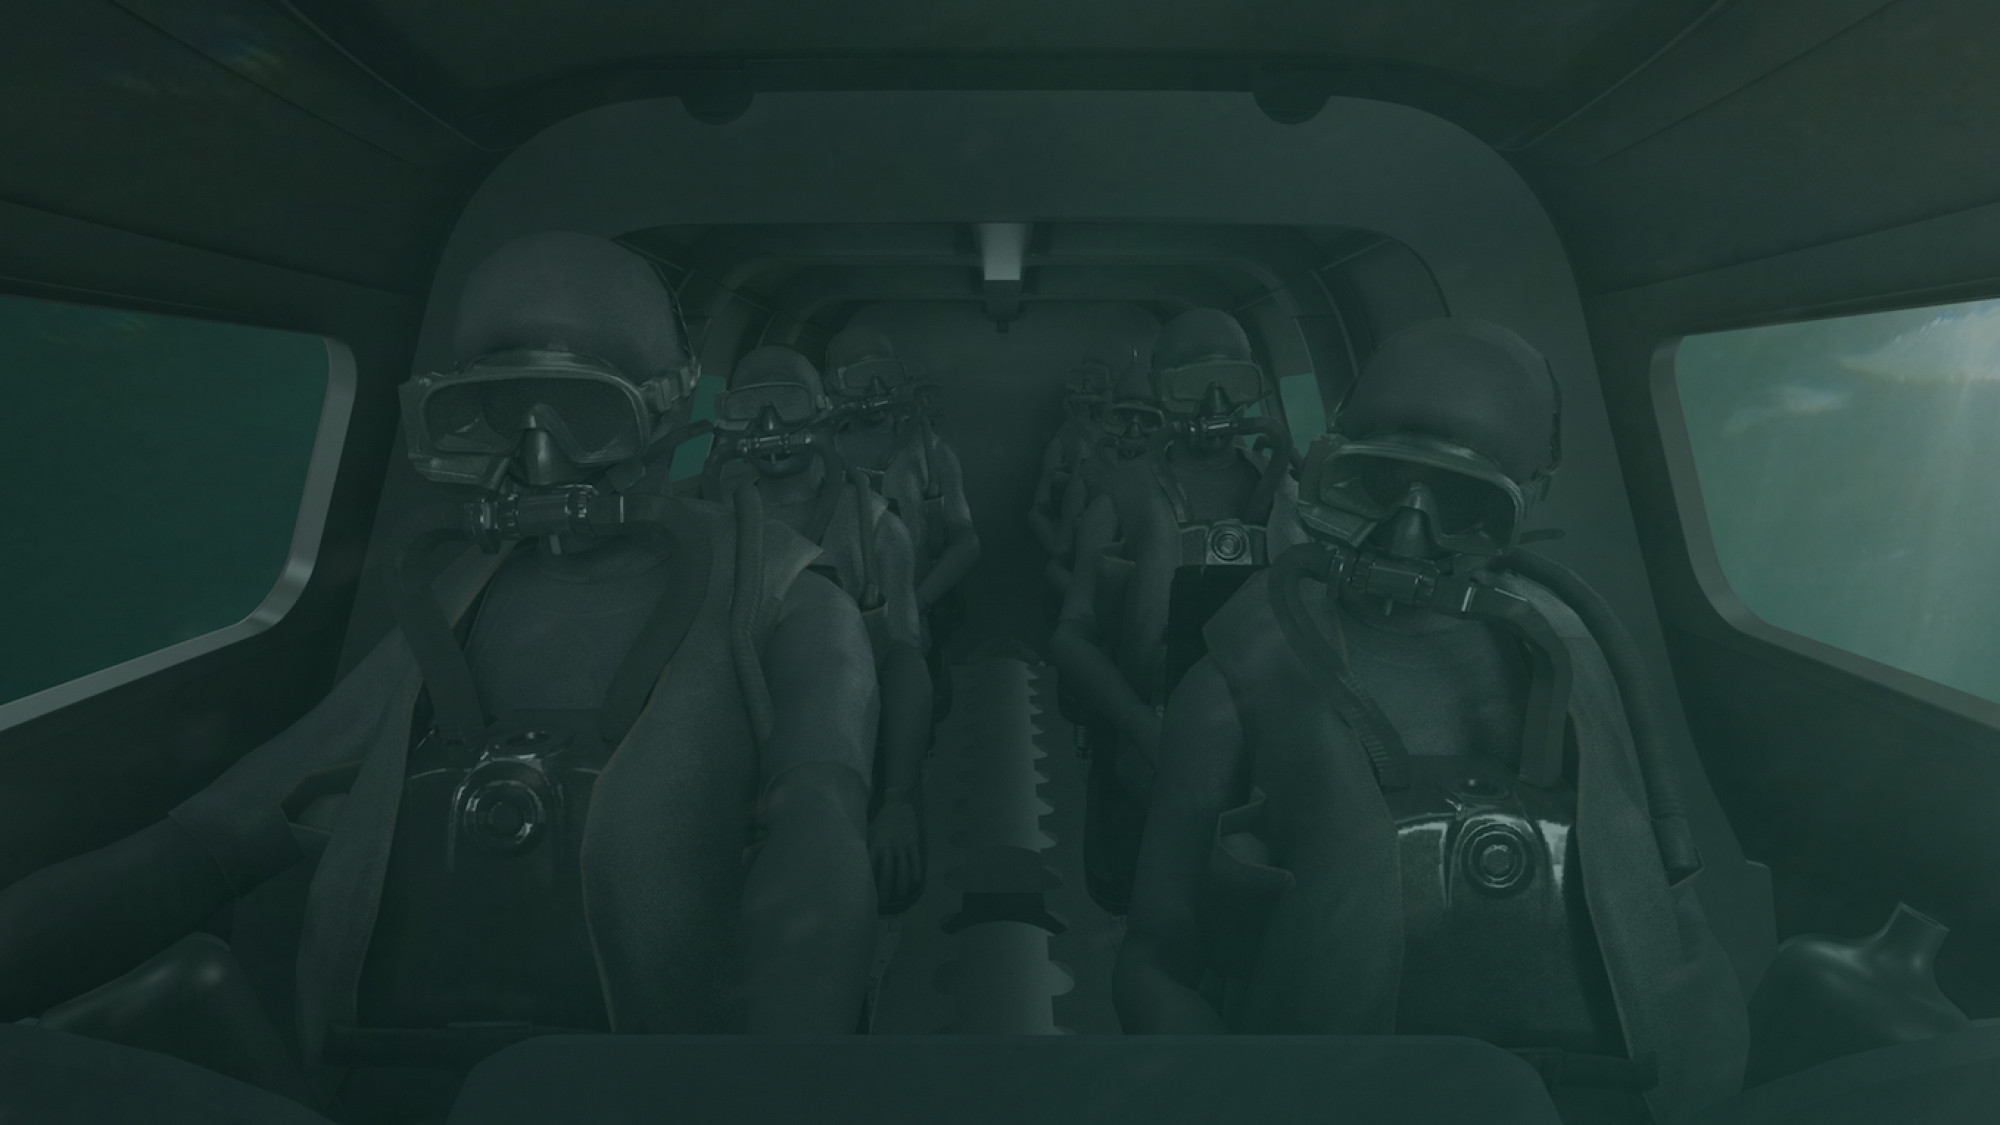 Operators submerged